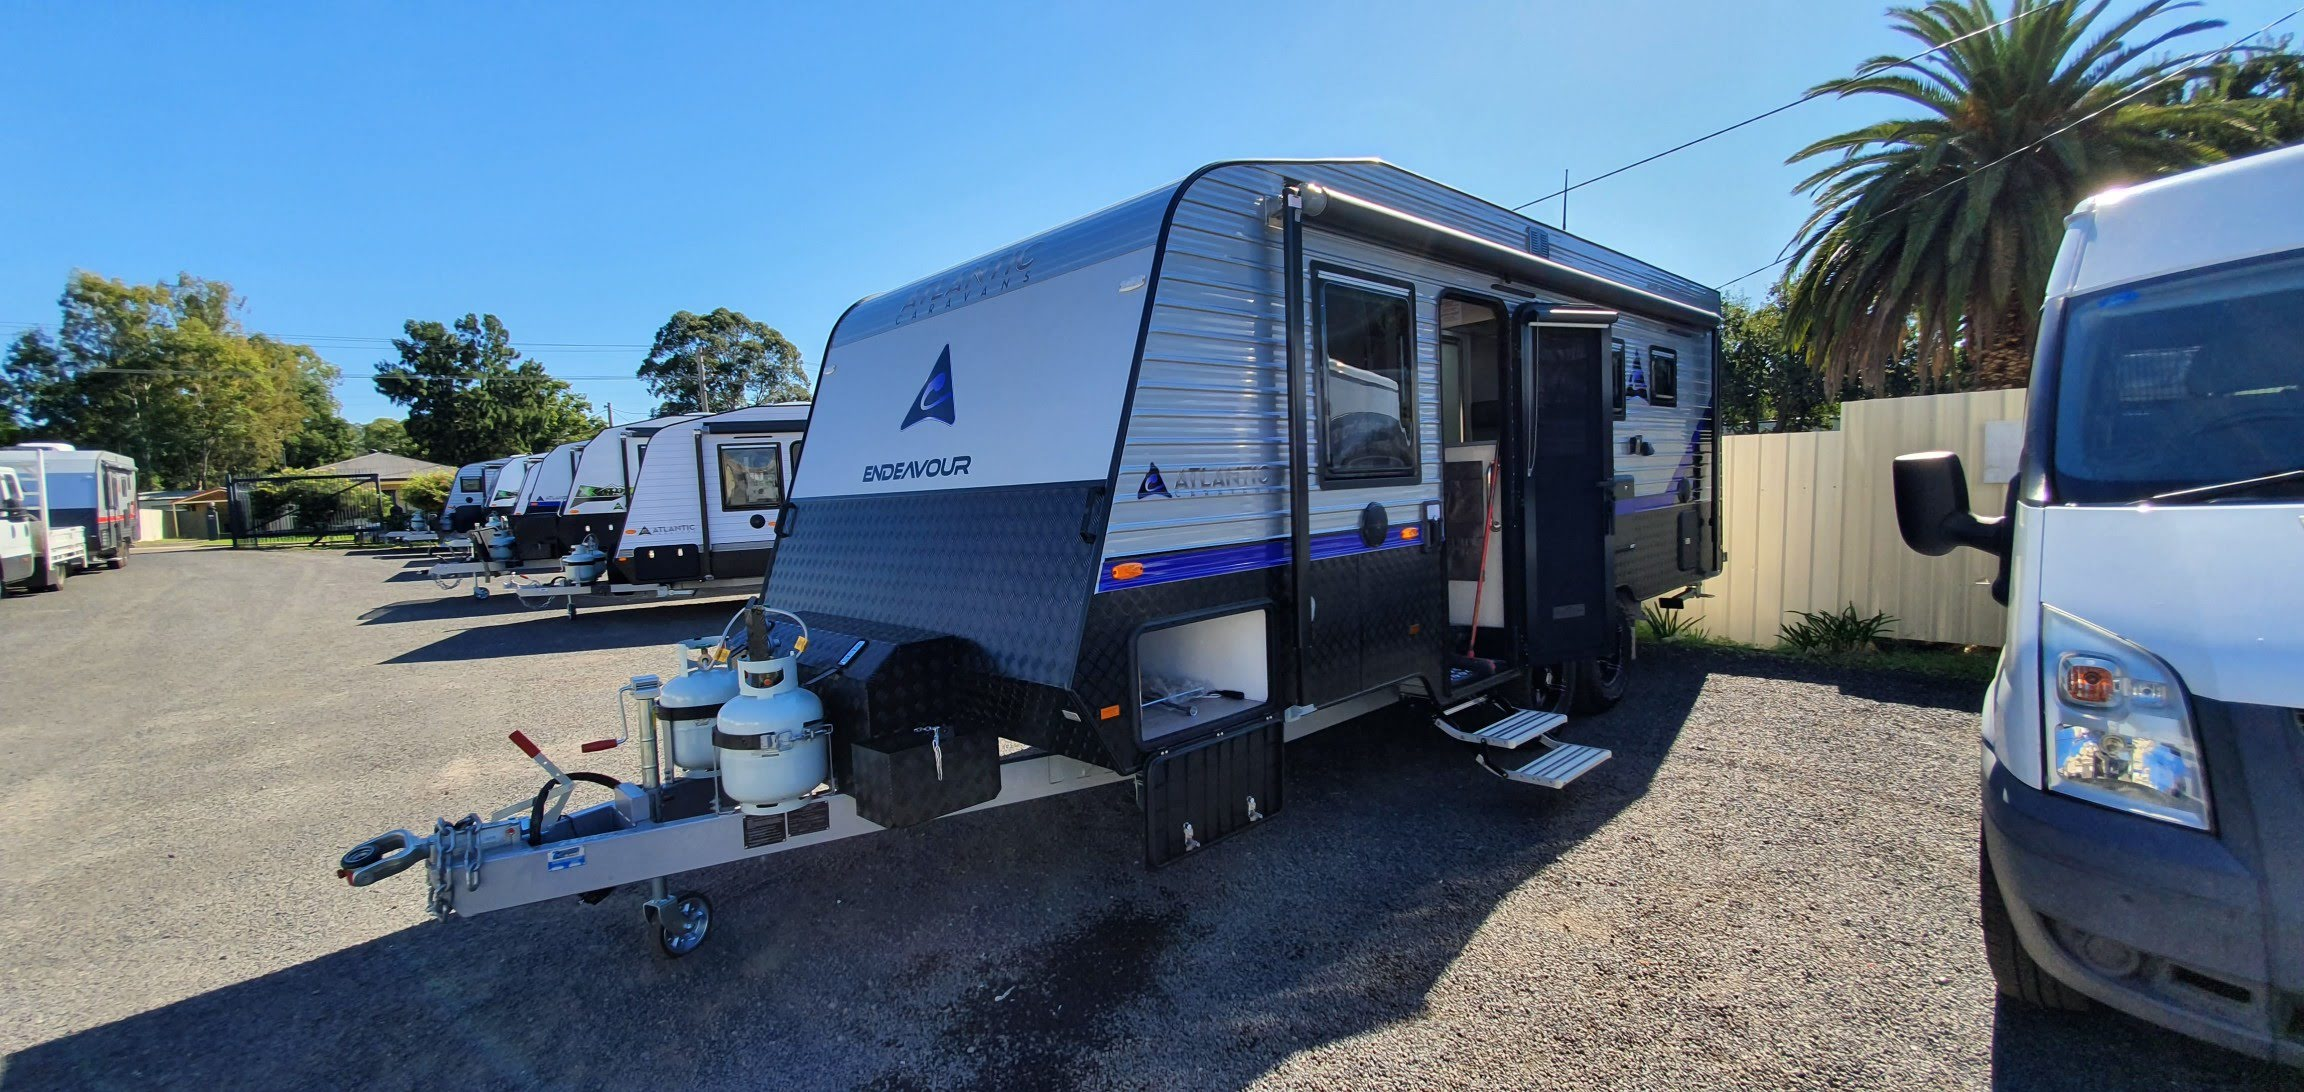 2019 ATLANTIC Endeavour 20' FAMILY VAN for sale in Windsor, NSW